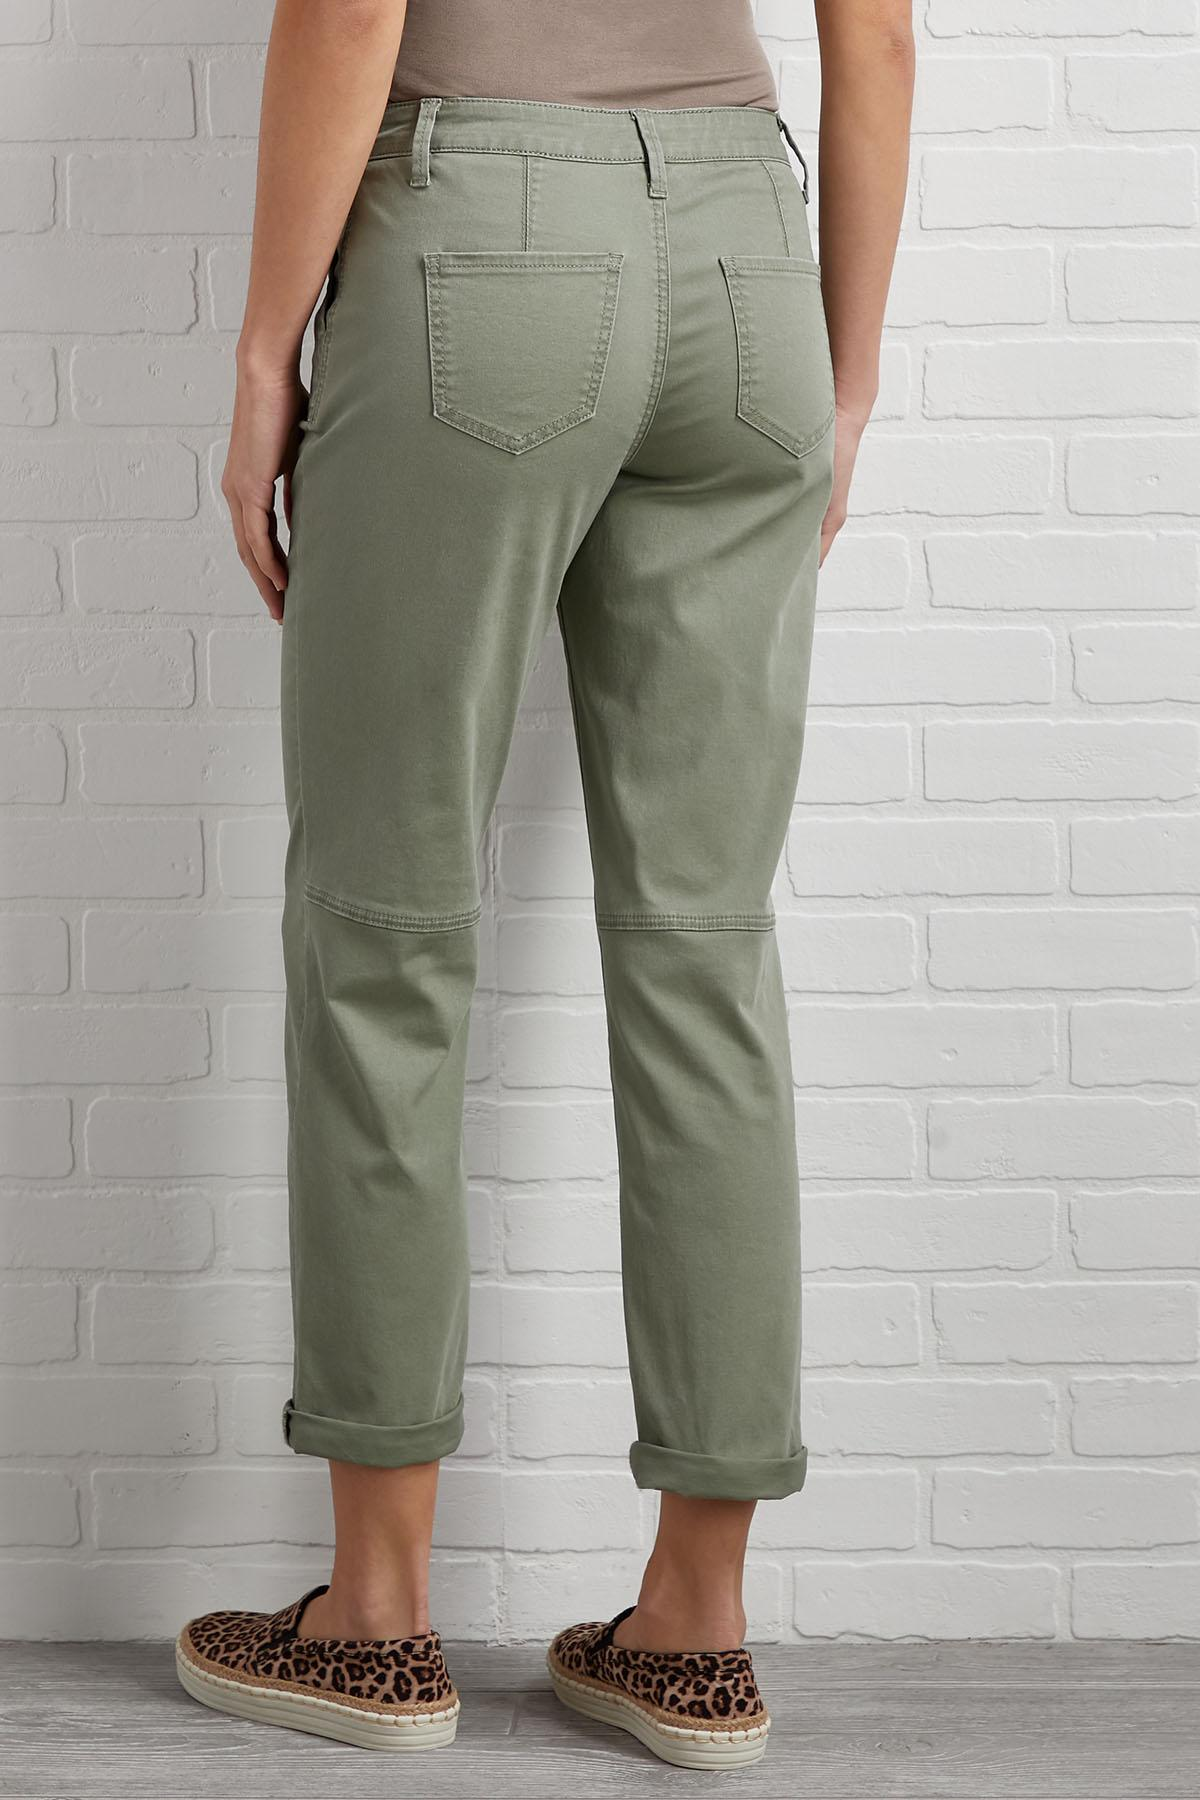 Where There's A Twill Pants